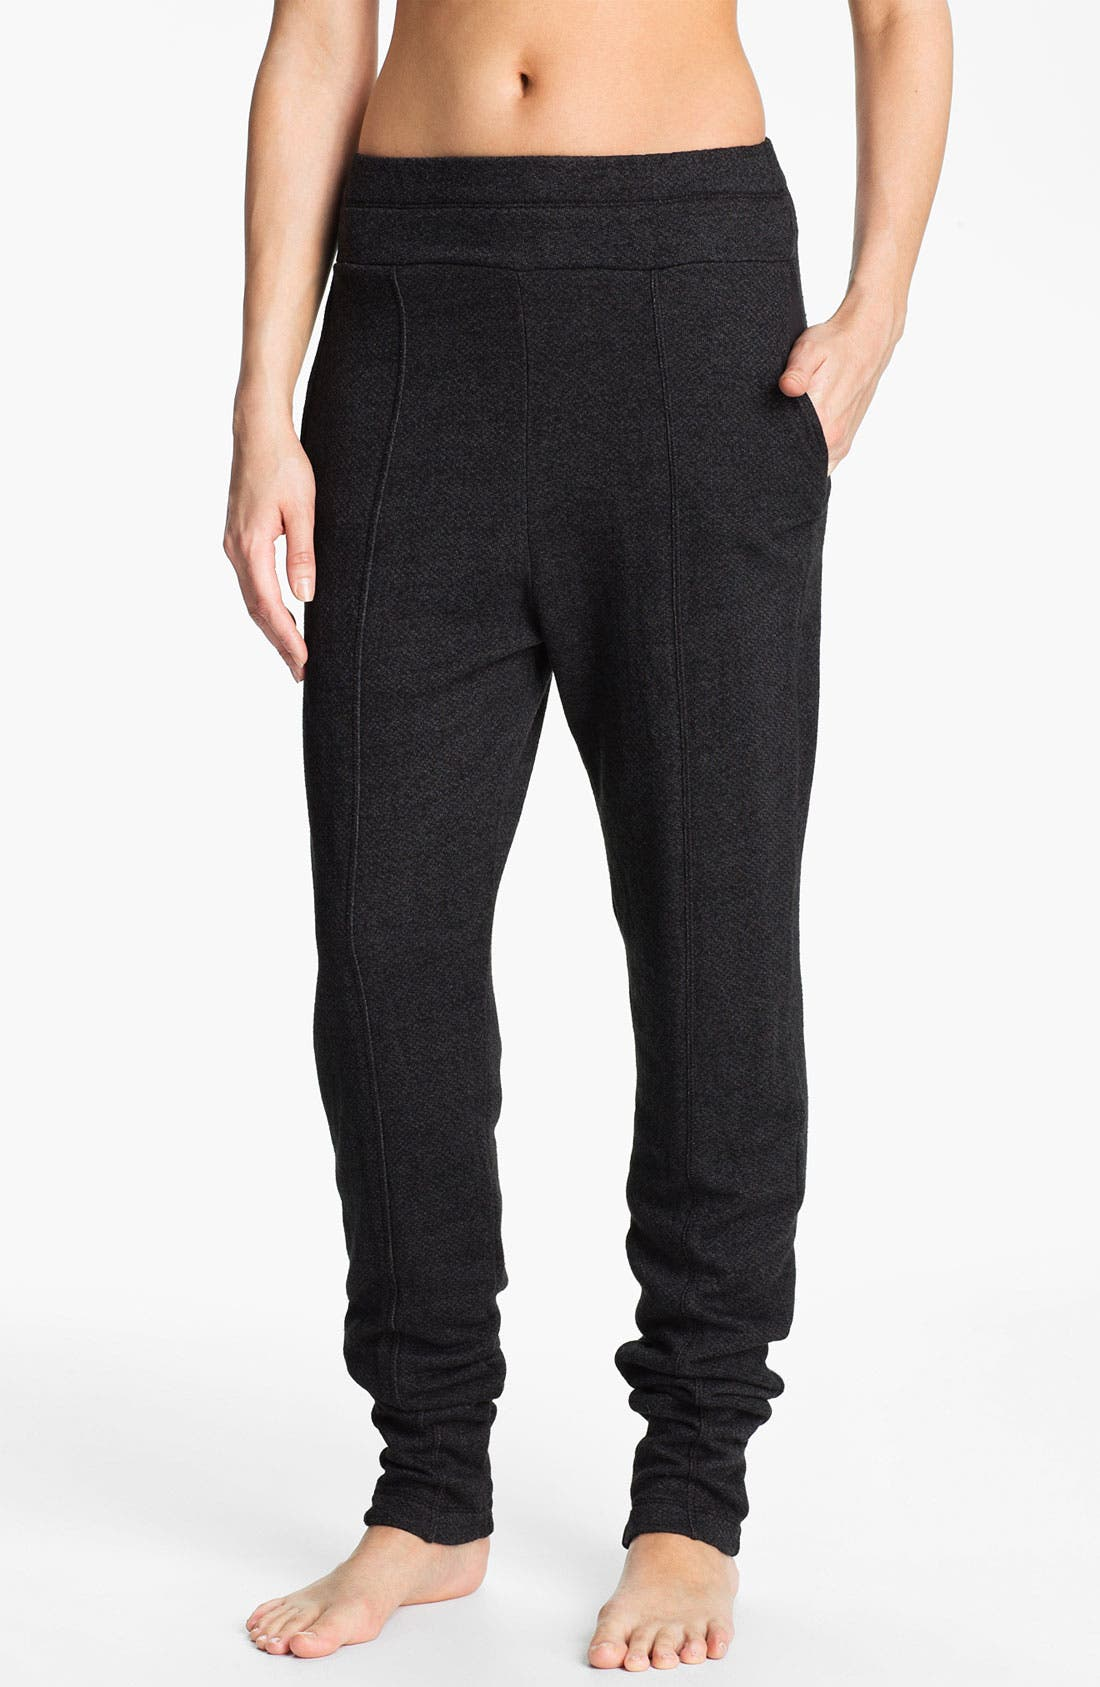 Alternate Image 1 Selected - Pure Karma 'Soar' Sweatpants